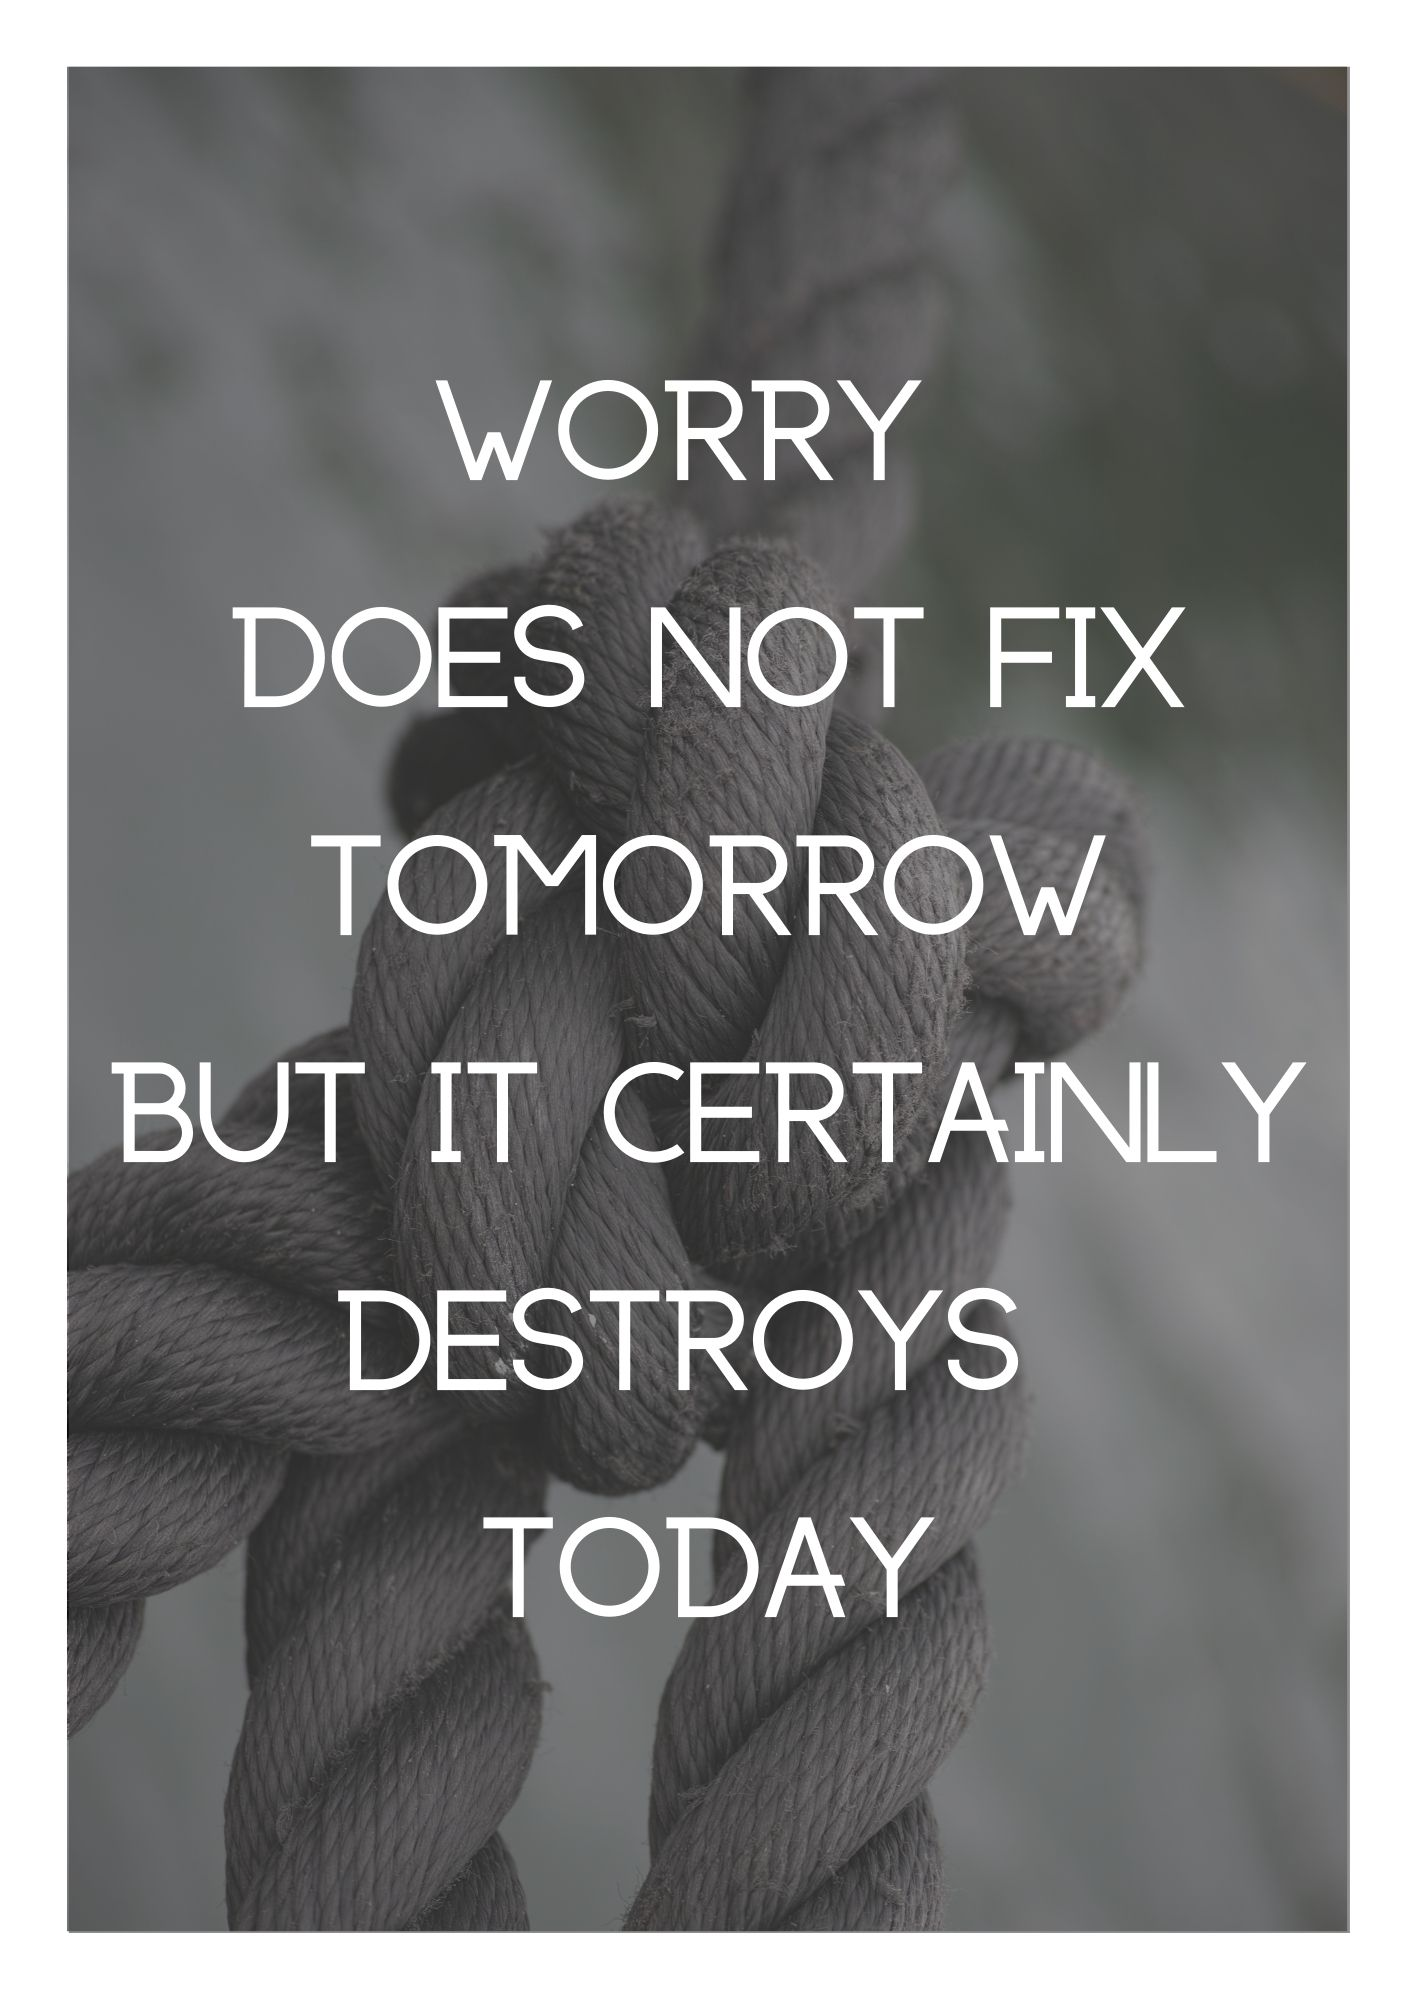 Worry Does Not Fix Tomorrow But It Certainly Destroys Today